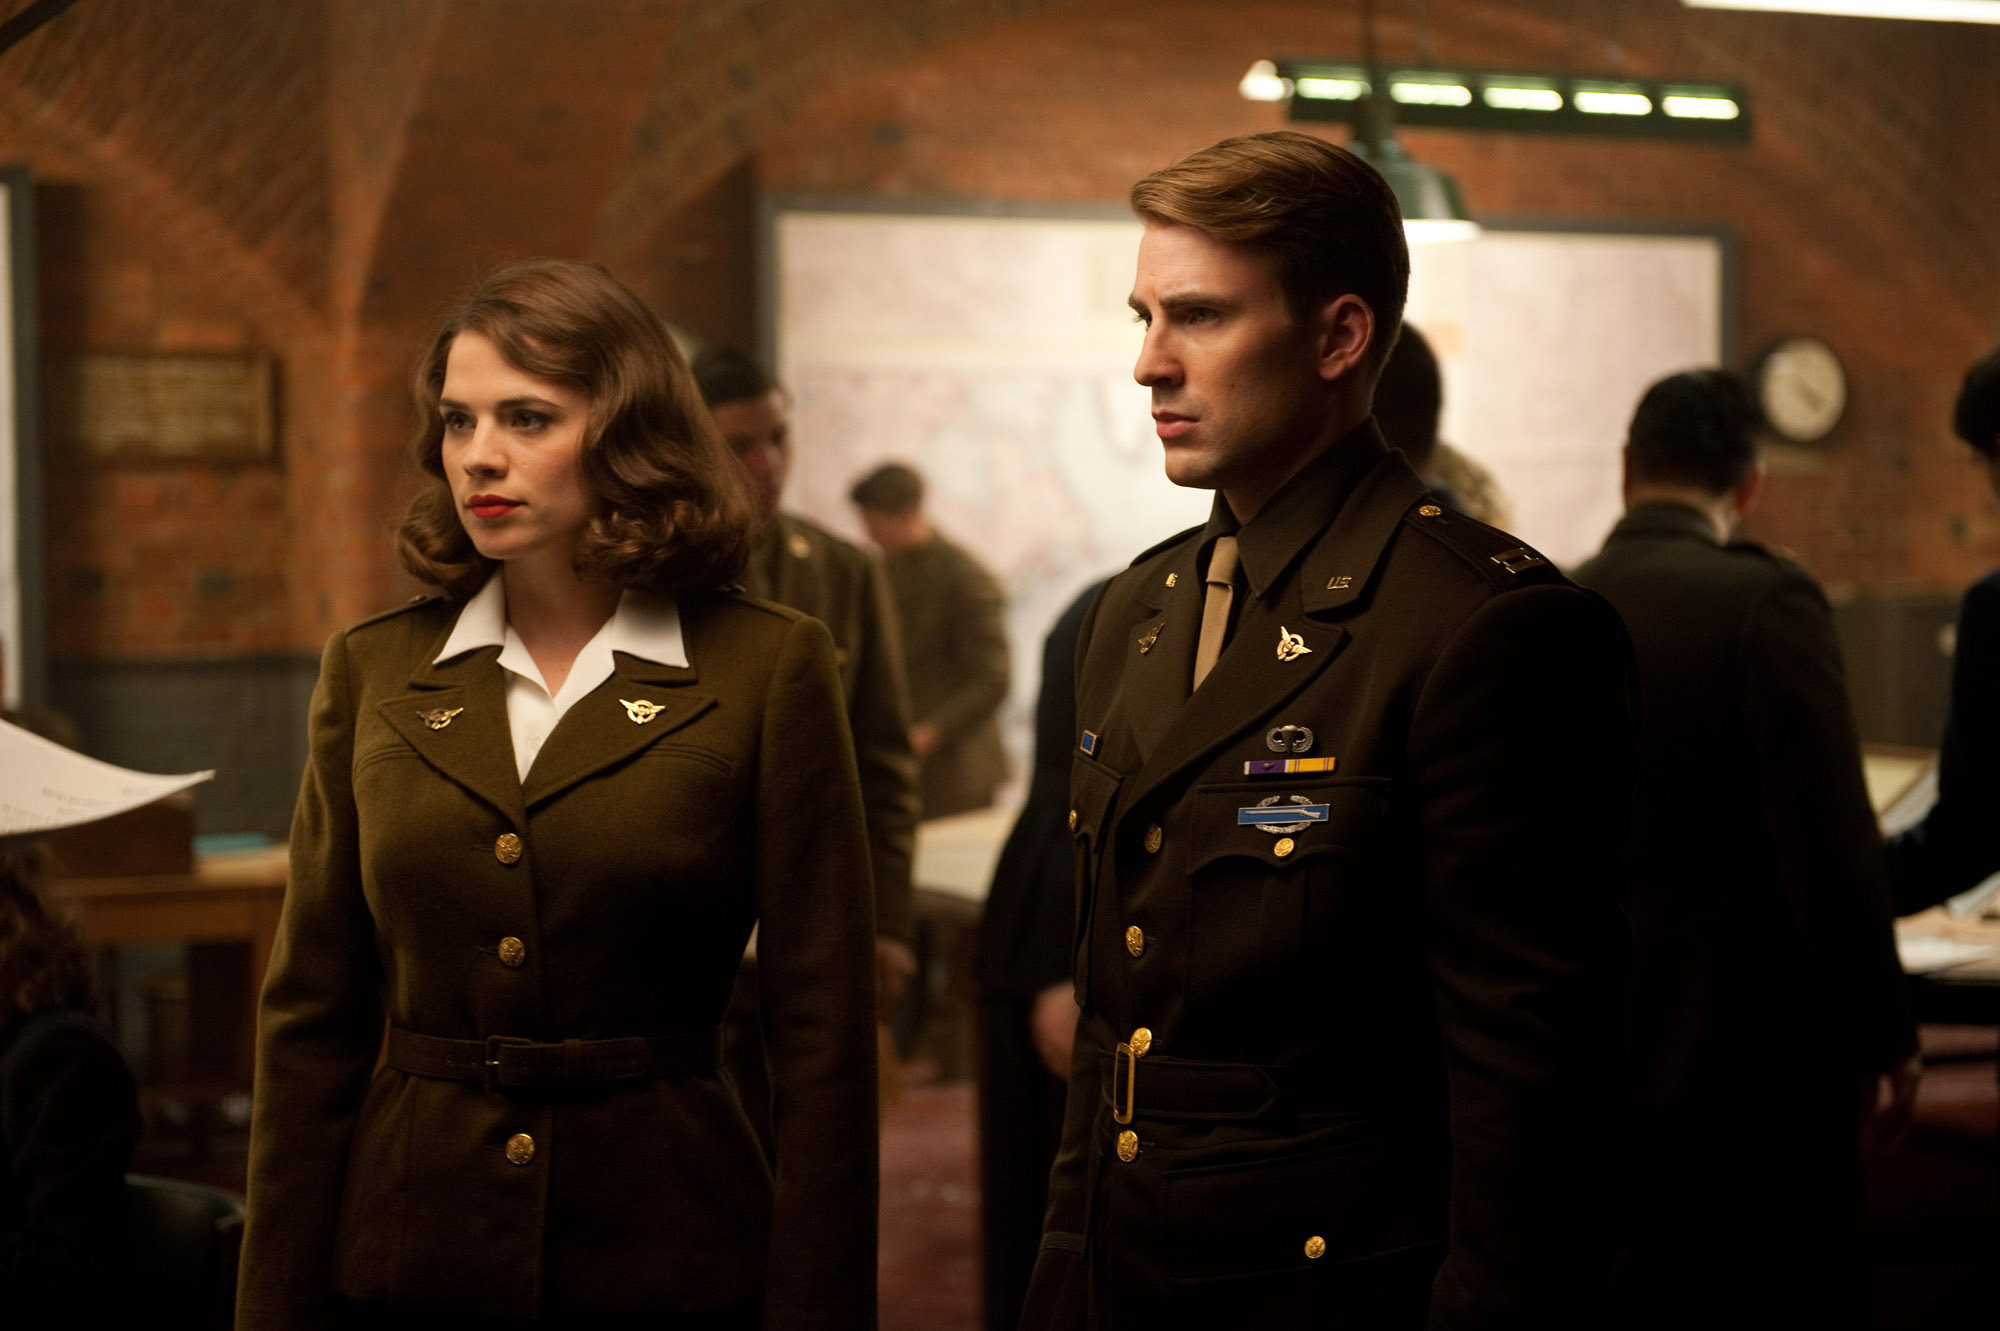 The only couple I will ever ship is Captain America and Peggy Carter